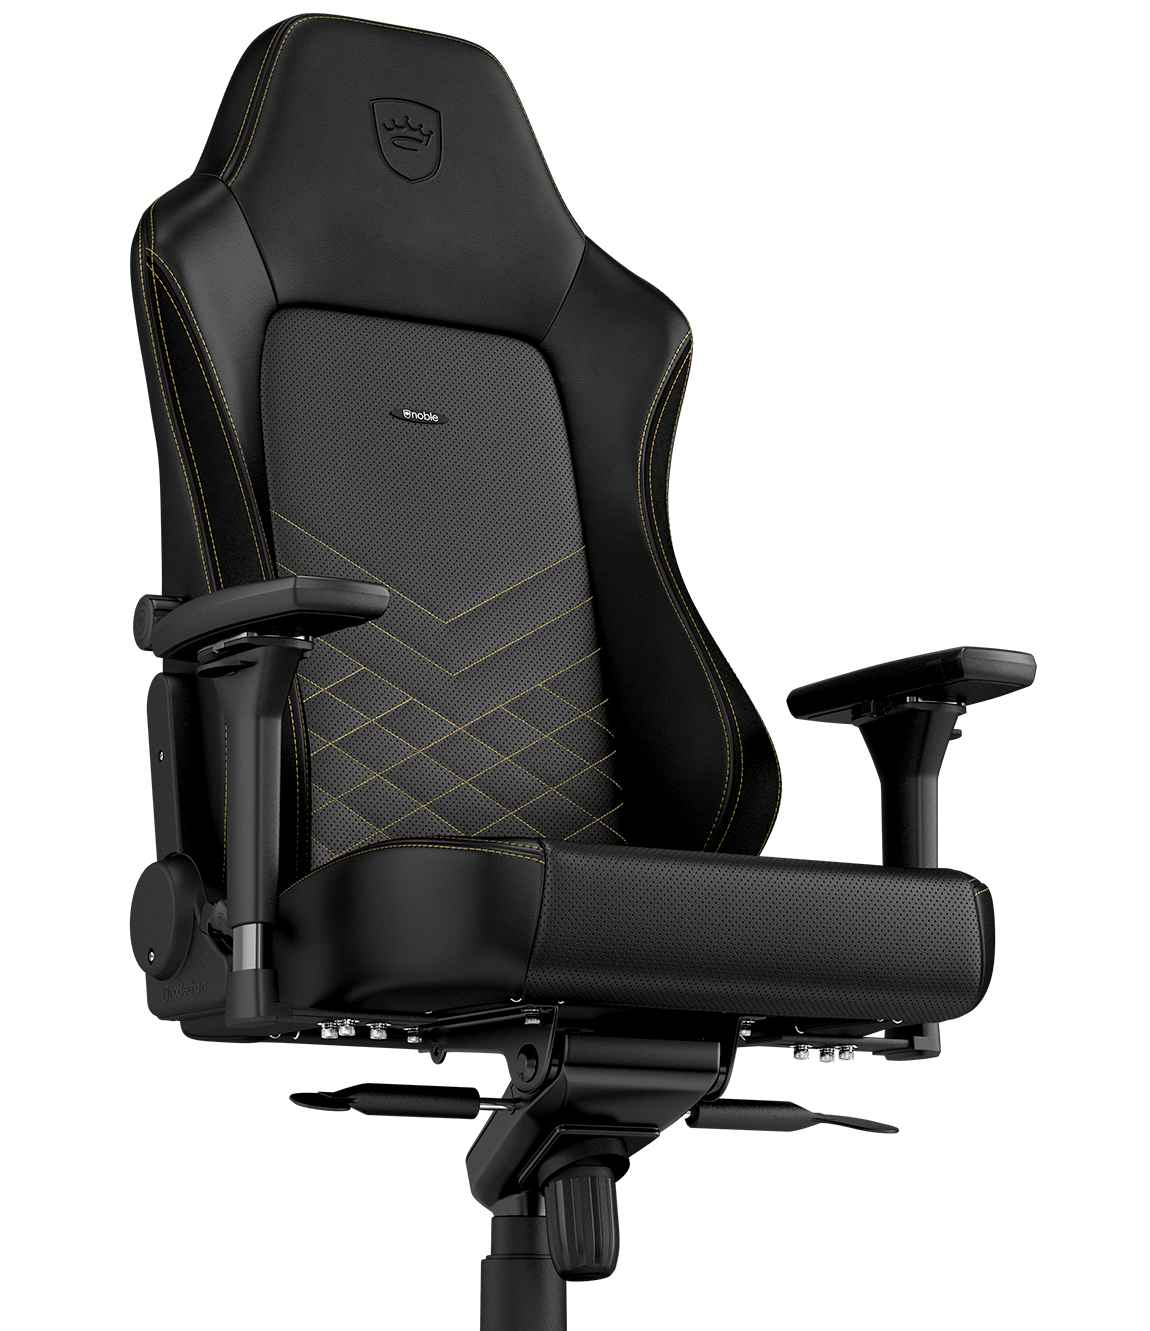 Schaumstoffmatratze Wikipedia Noblechairs Die Gaming Stuhl Evolution